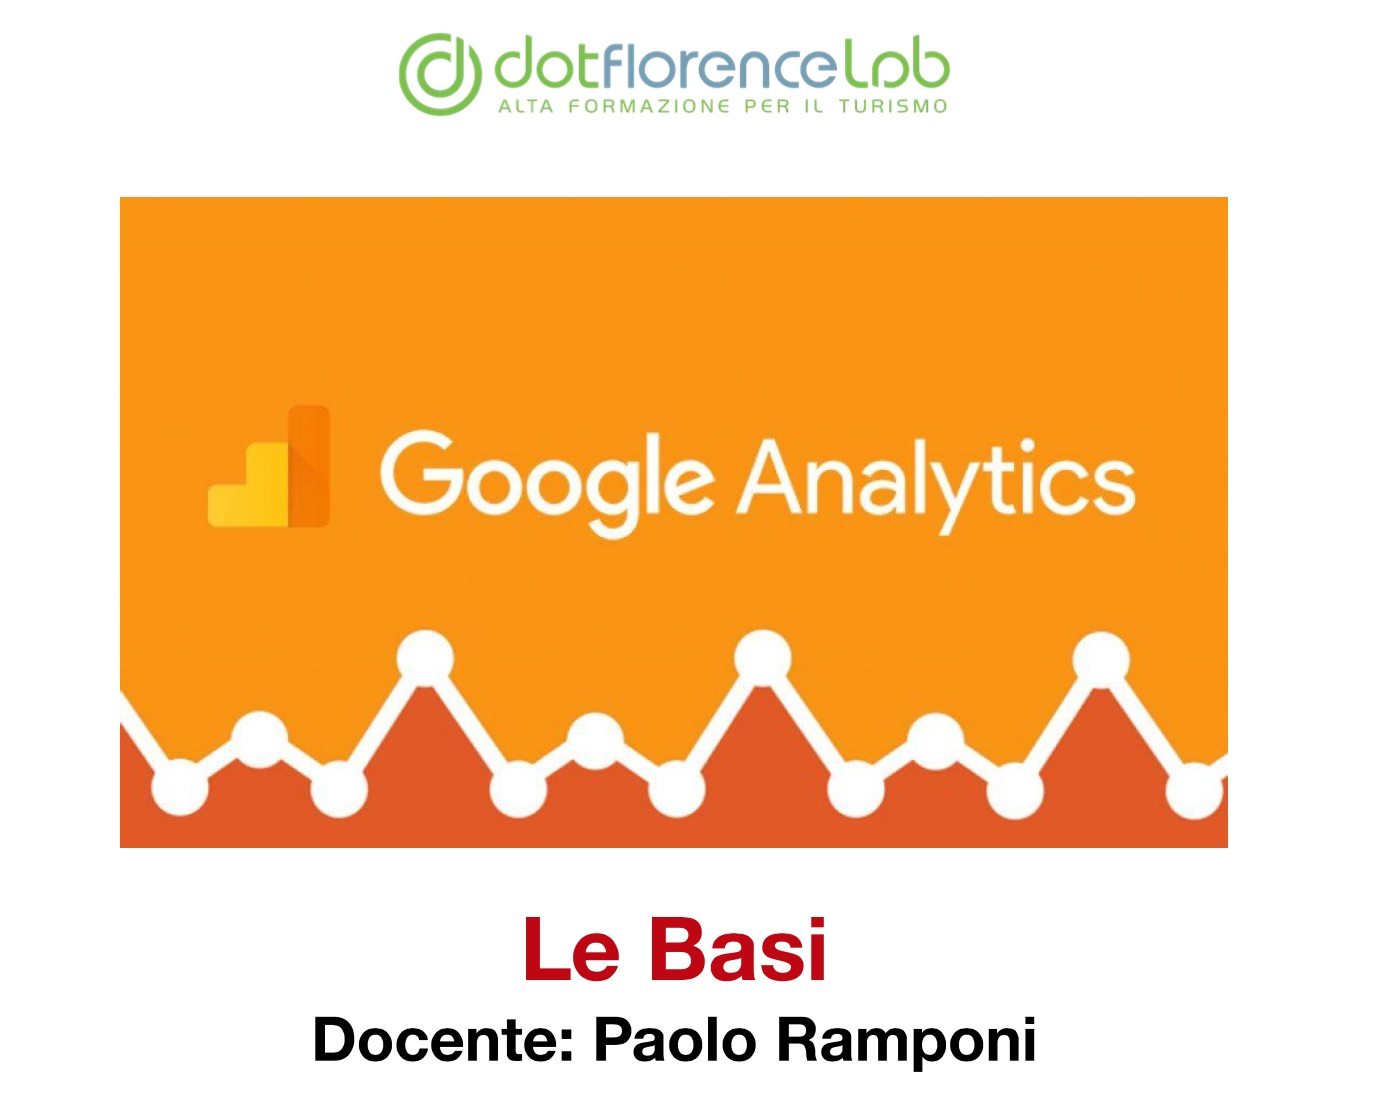 dotFlorence Lab 16 Ottobre: SEO 2019 by Paolo Ramponi: metriche, audit, new tools